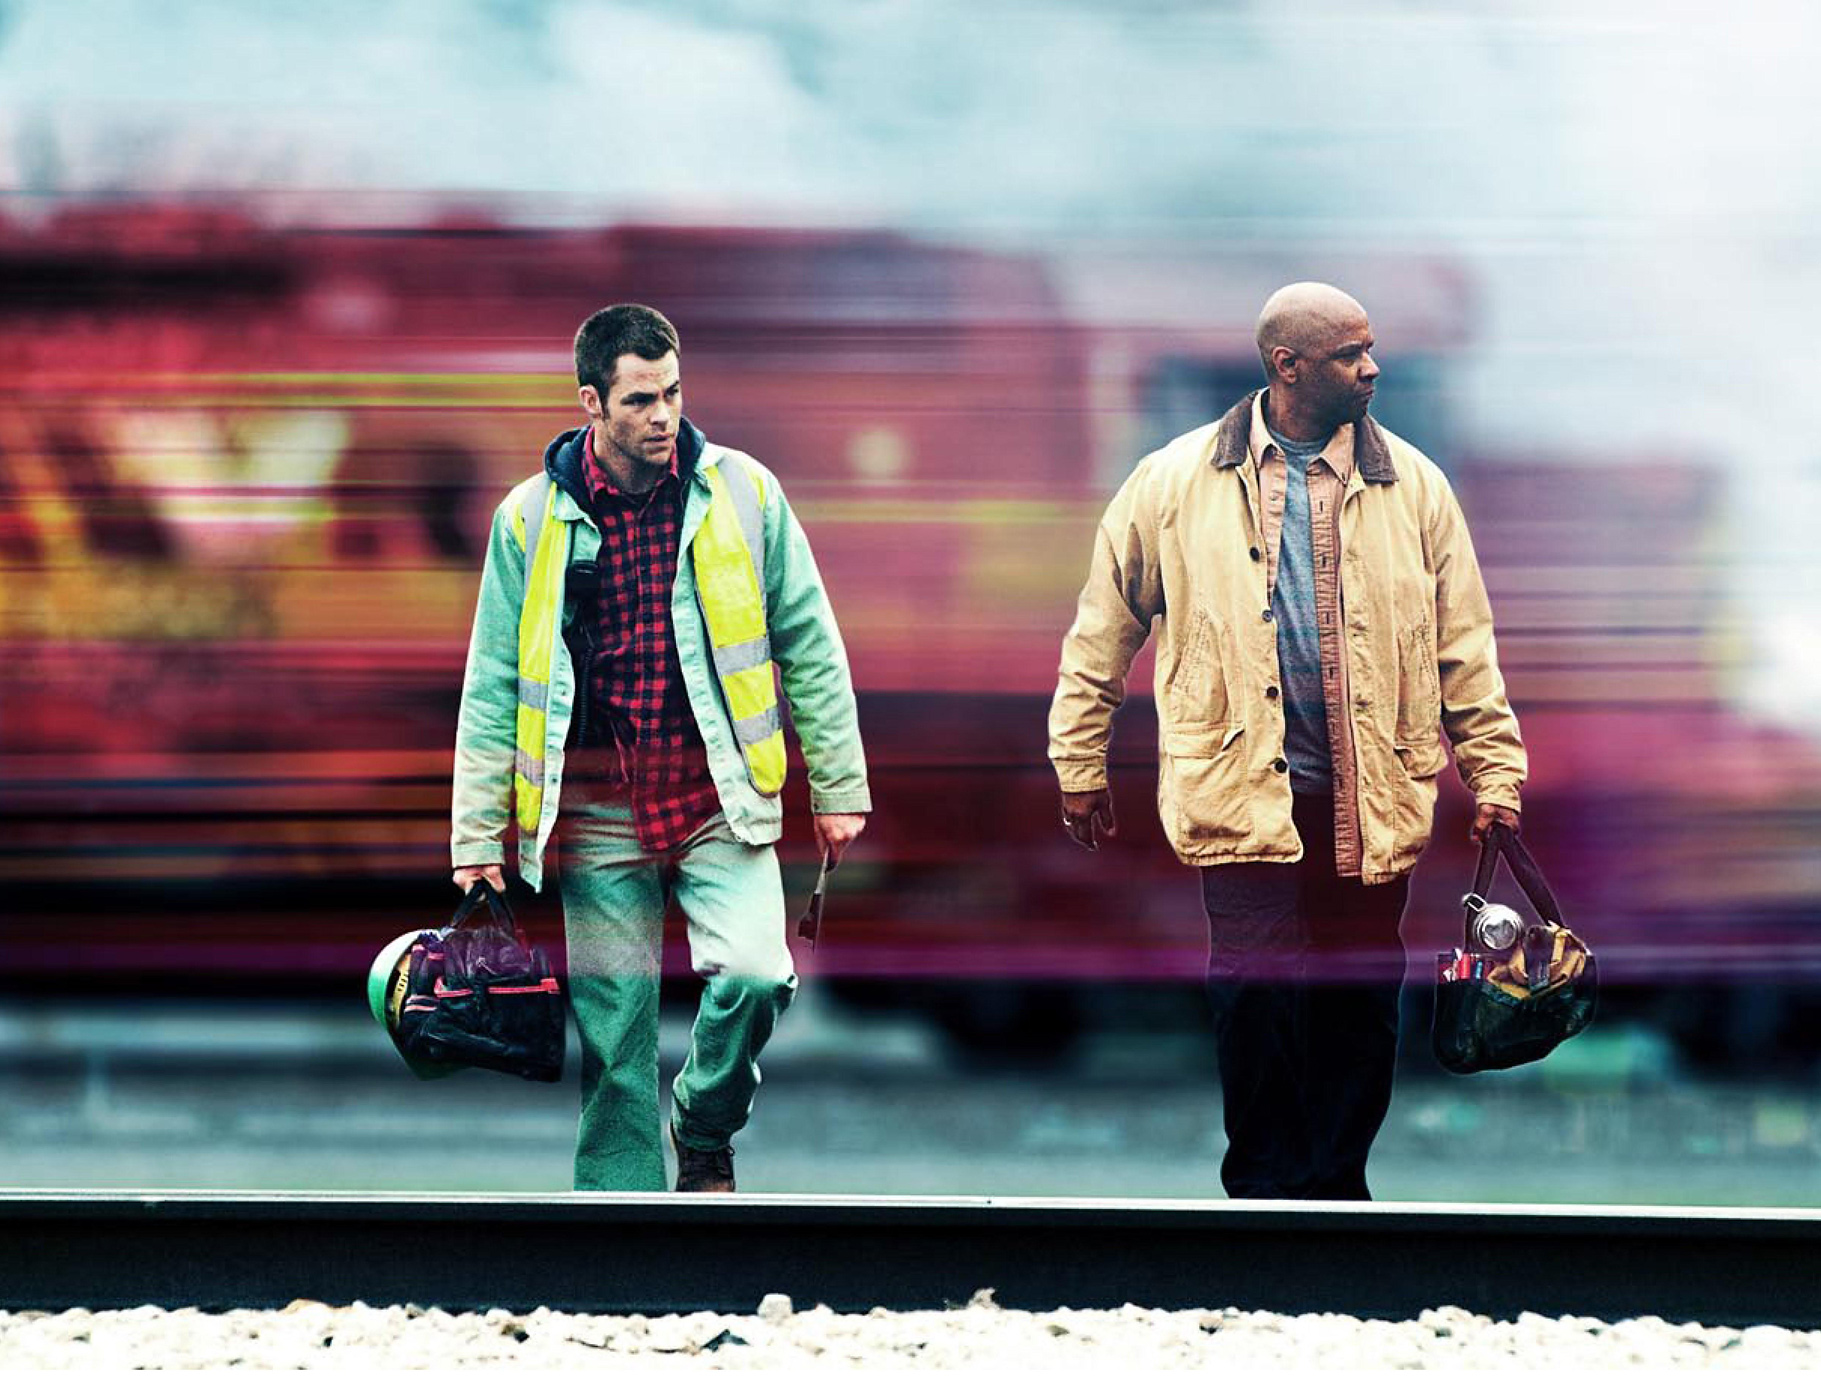 Unstoppable (2010) was Washington's second train movie in as many years, but also provided us with a wonderful SNL parody starring Jay Pharoah and Taran Killam.